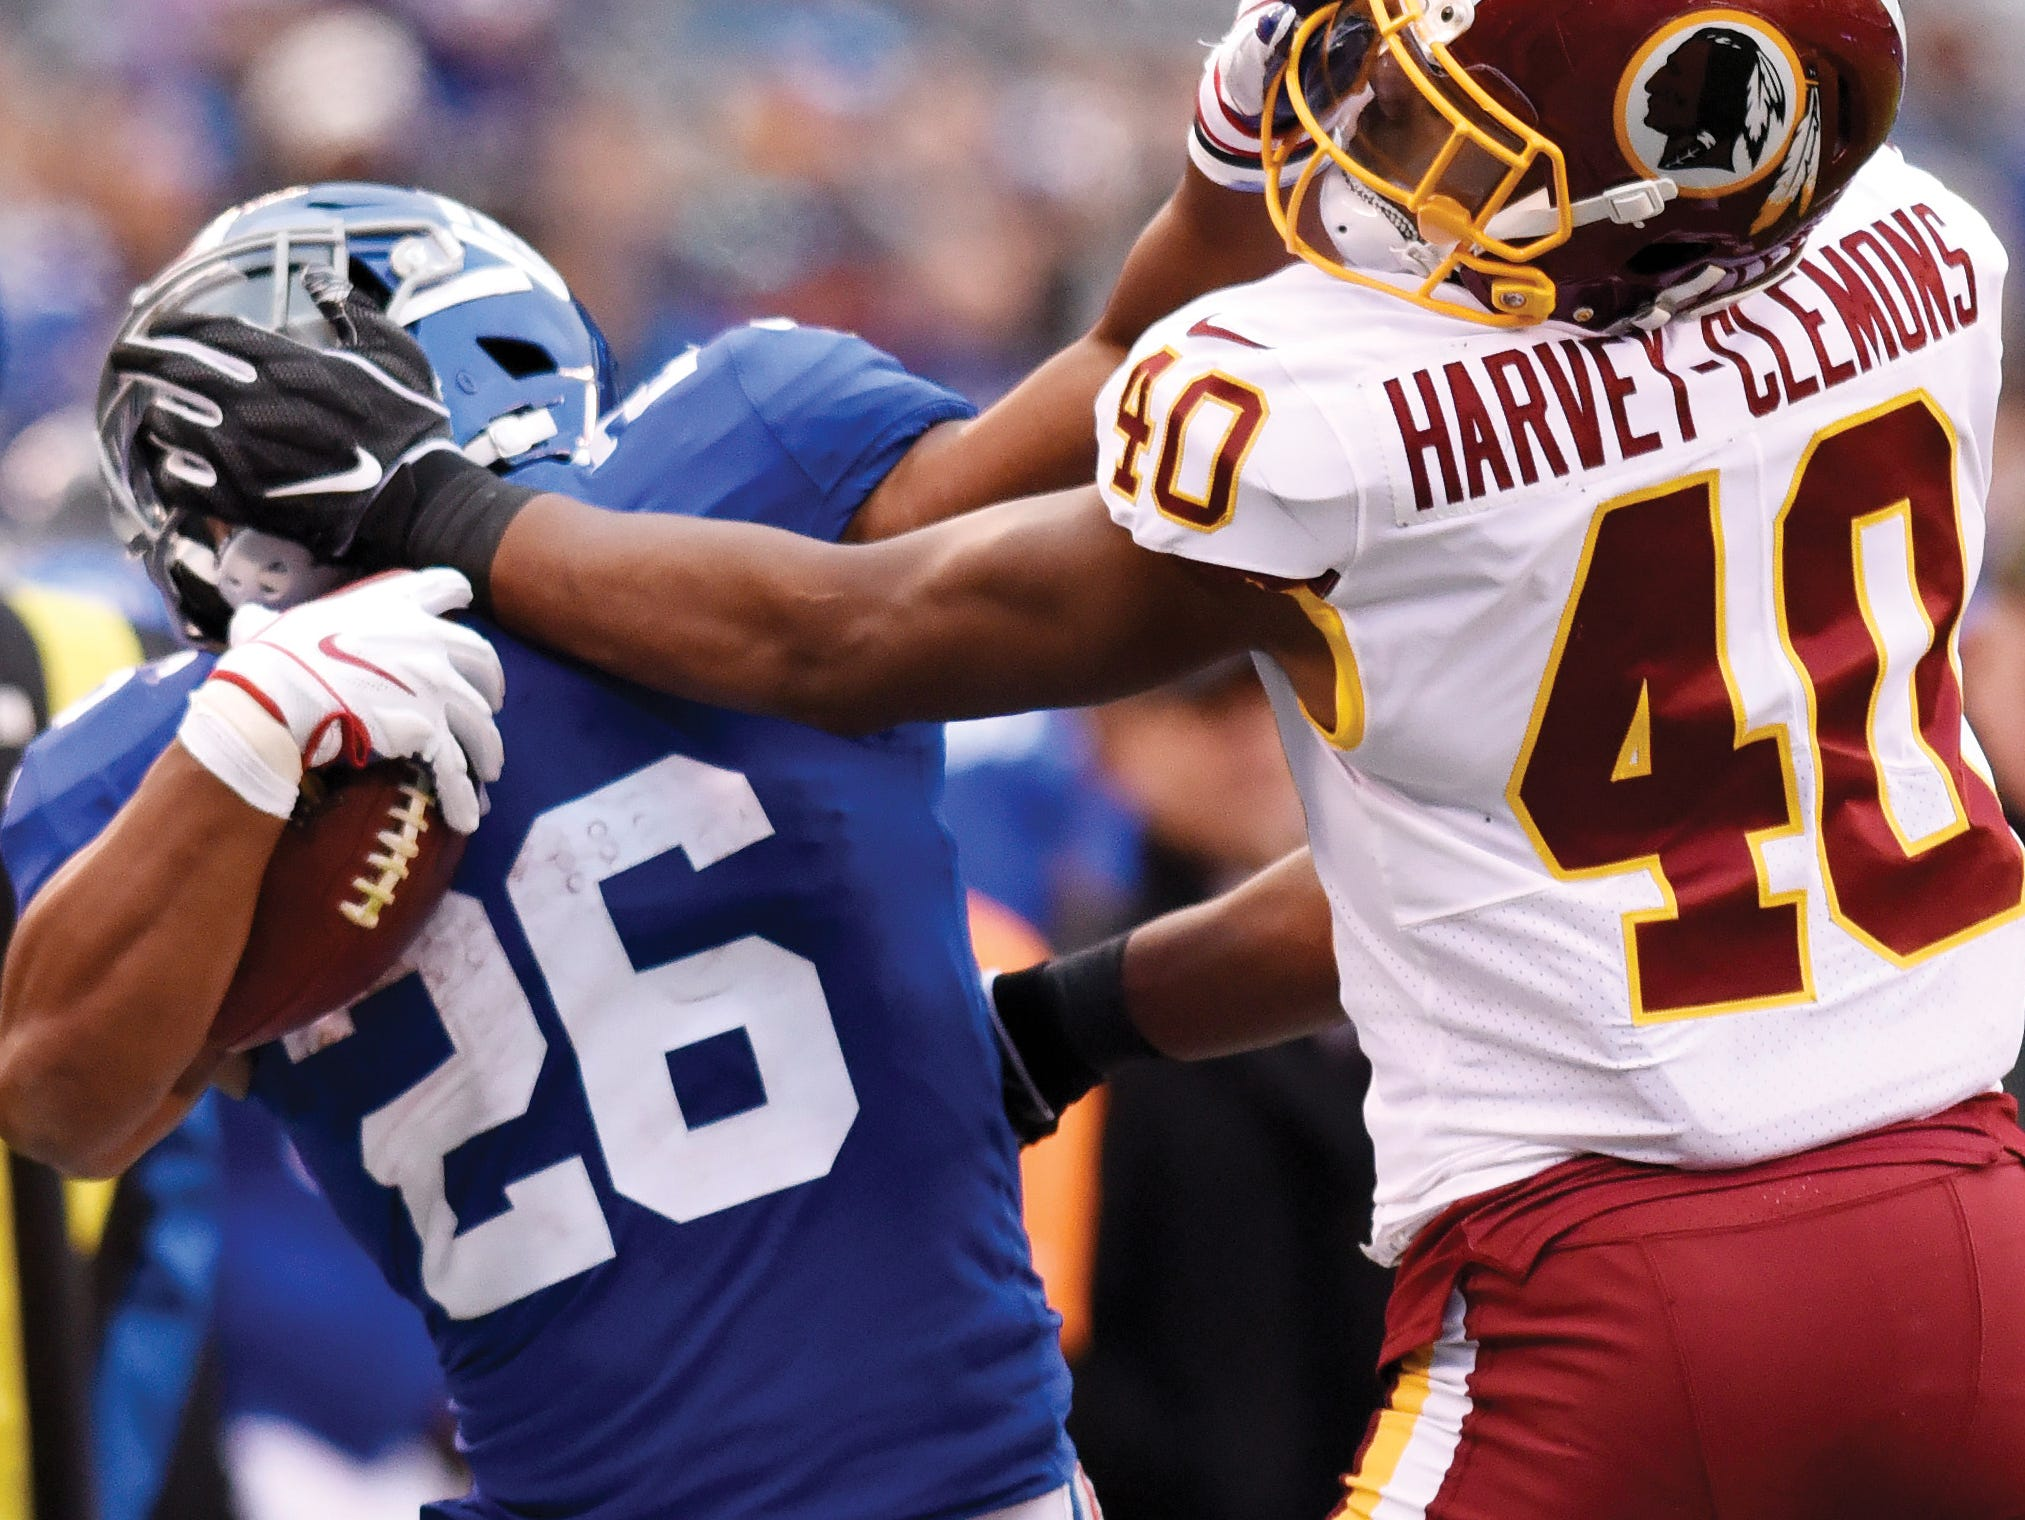 New York Giants running back Saquon Barkley (26) and Washington Redskins linebacker Josh Harvey-Clemons (40) stiff-arm each other in the second half. The Giants lose to the Redskins 20-13 on Sunday, Oct. 28, 2018, in East Rutherford. (Danielle Parhizkaran/@danielleparhiz)